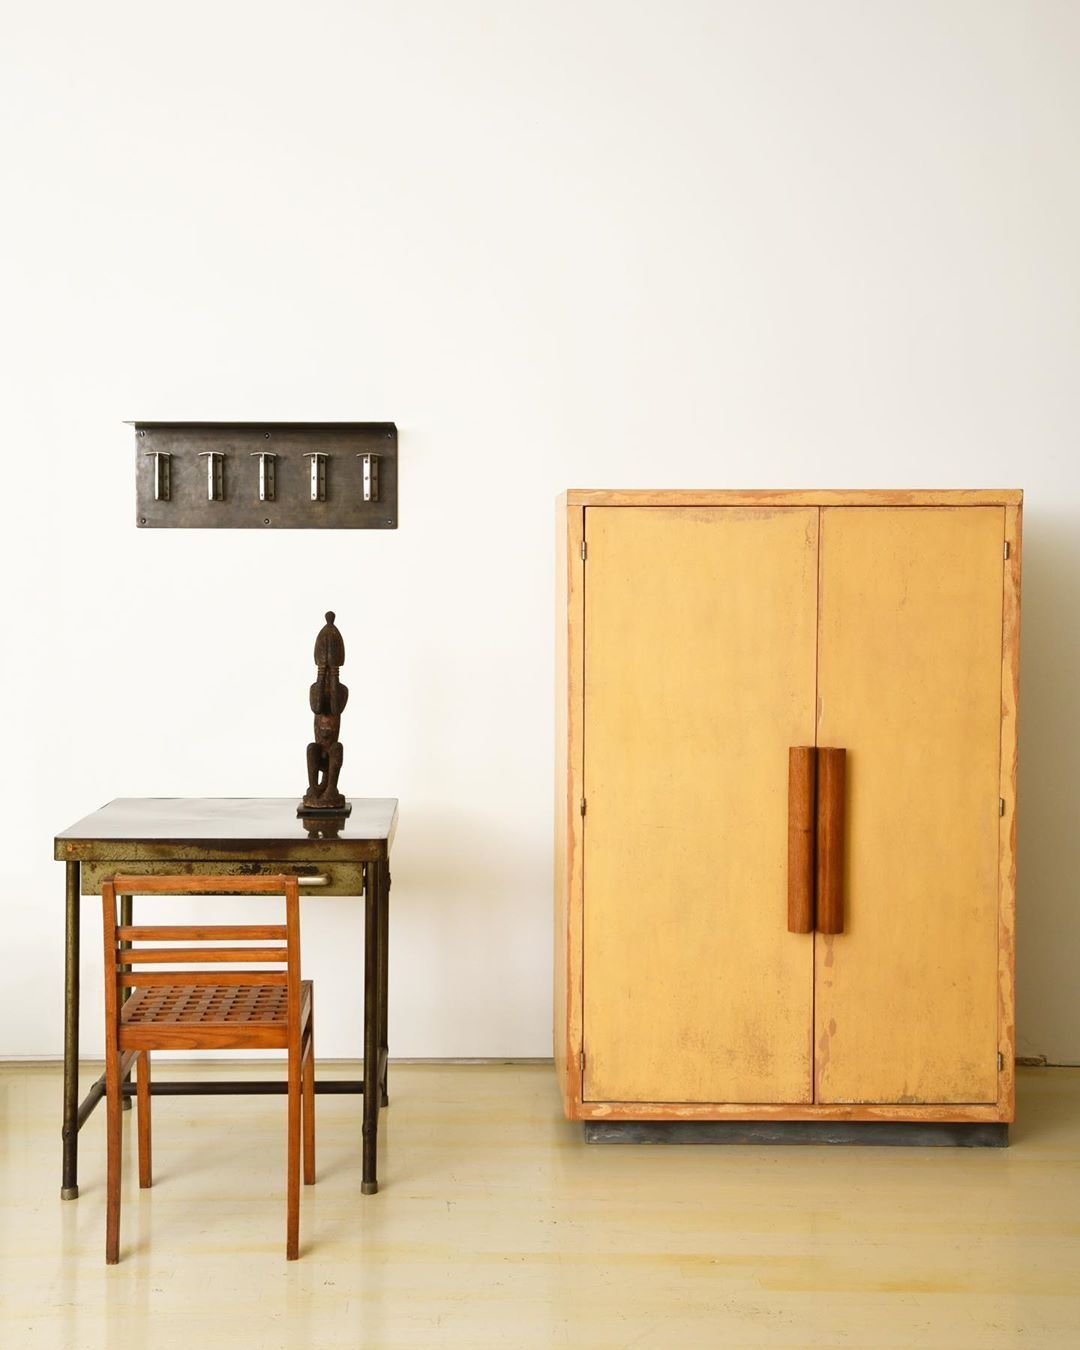 Magen H Gallery On Instagram Friday Afternoon At The Gallery Pieces Are Le Corbusier S Cabinet 1949 52 Rene Gabriel S Sinistre Chair C 1946 Re Magen